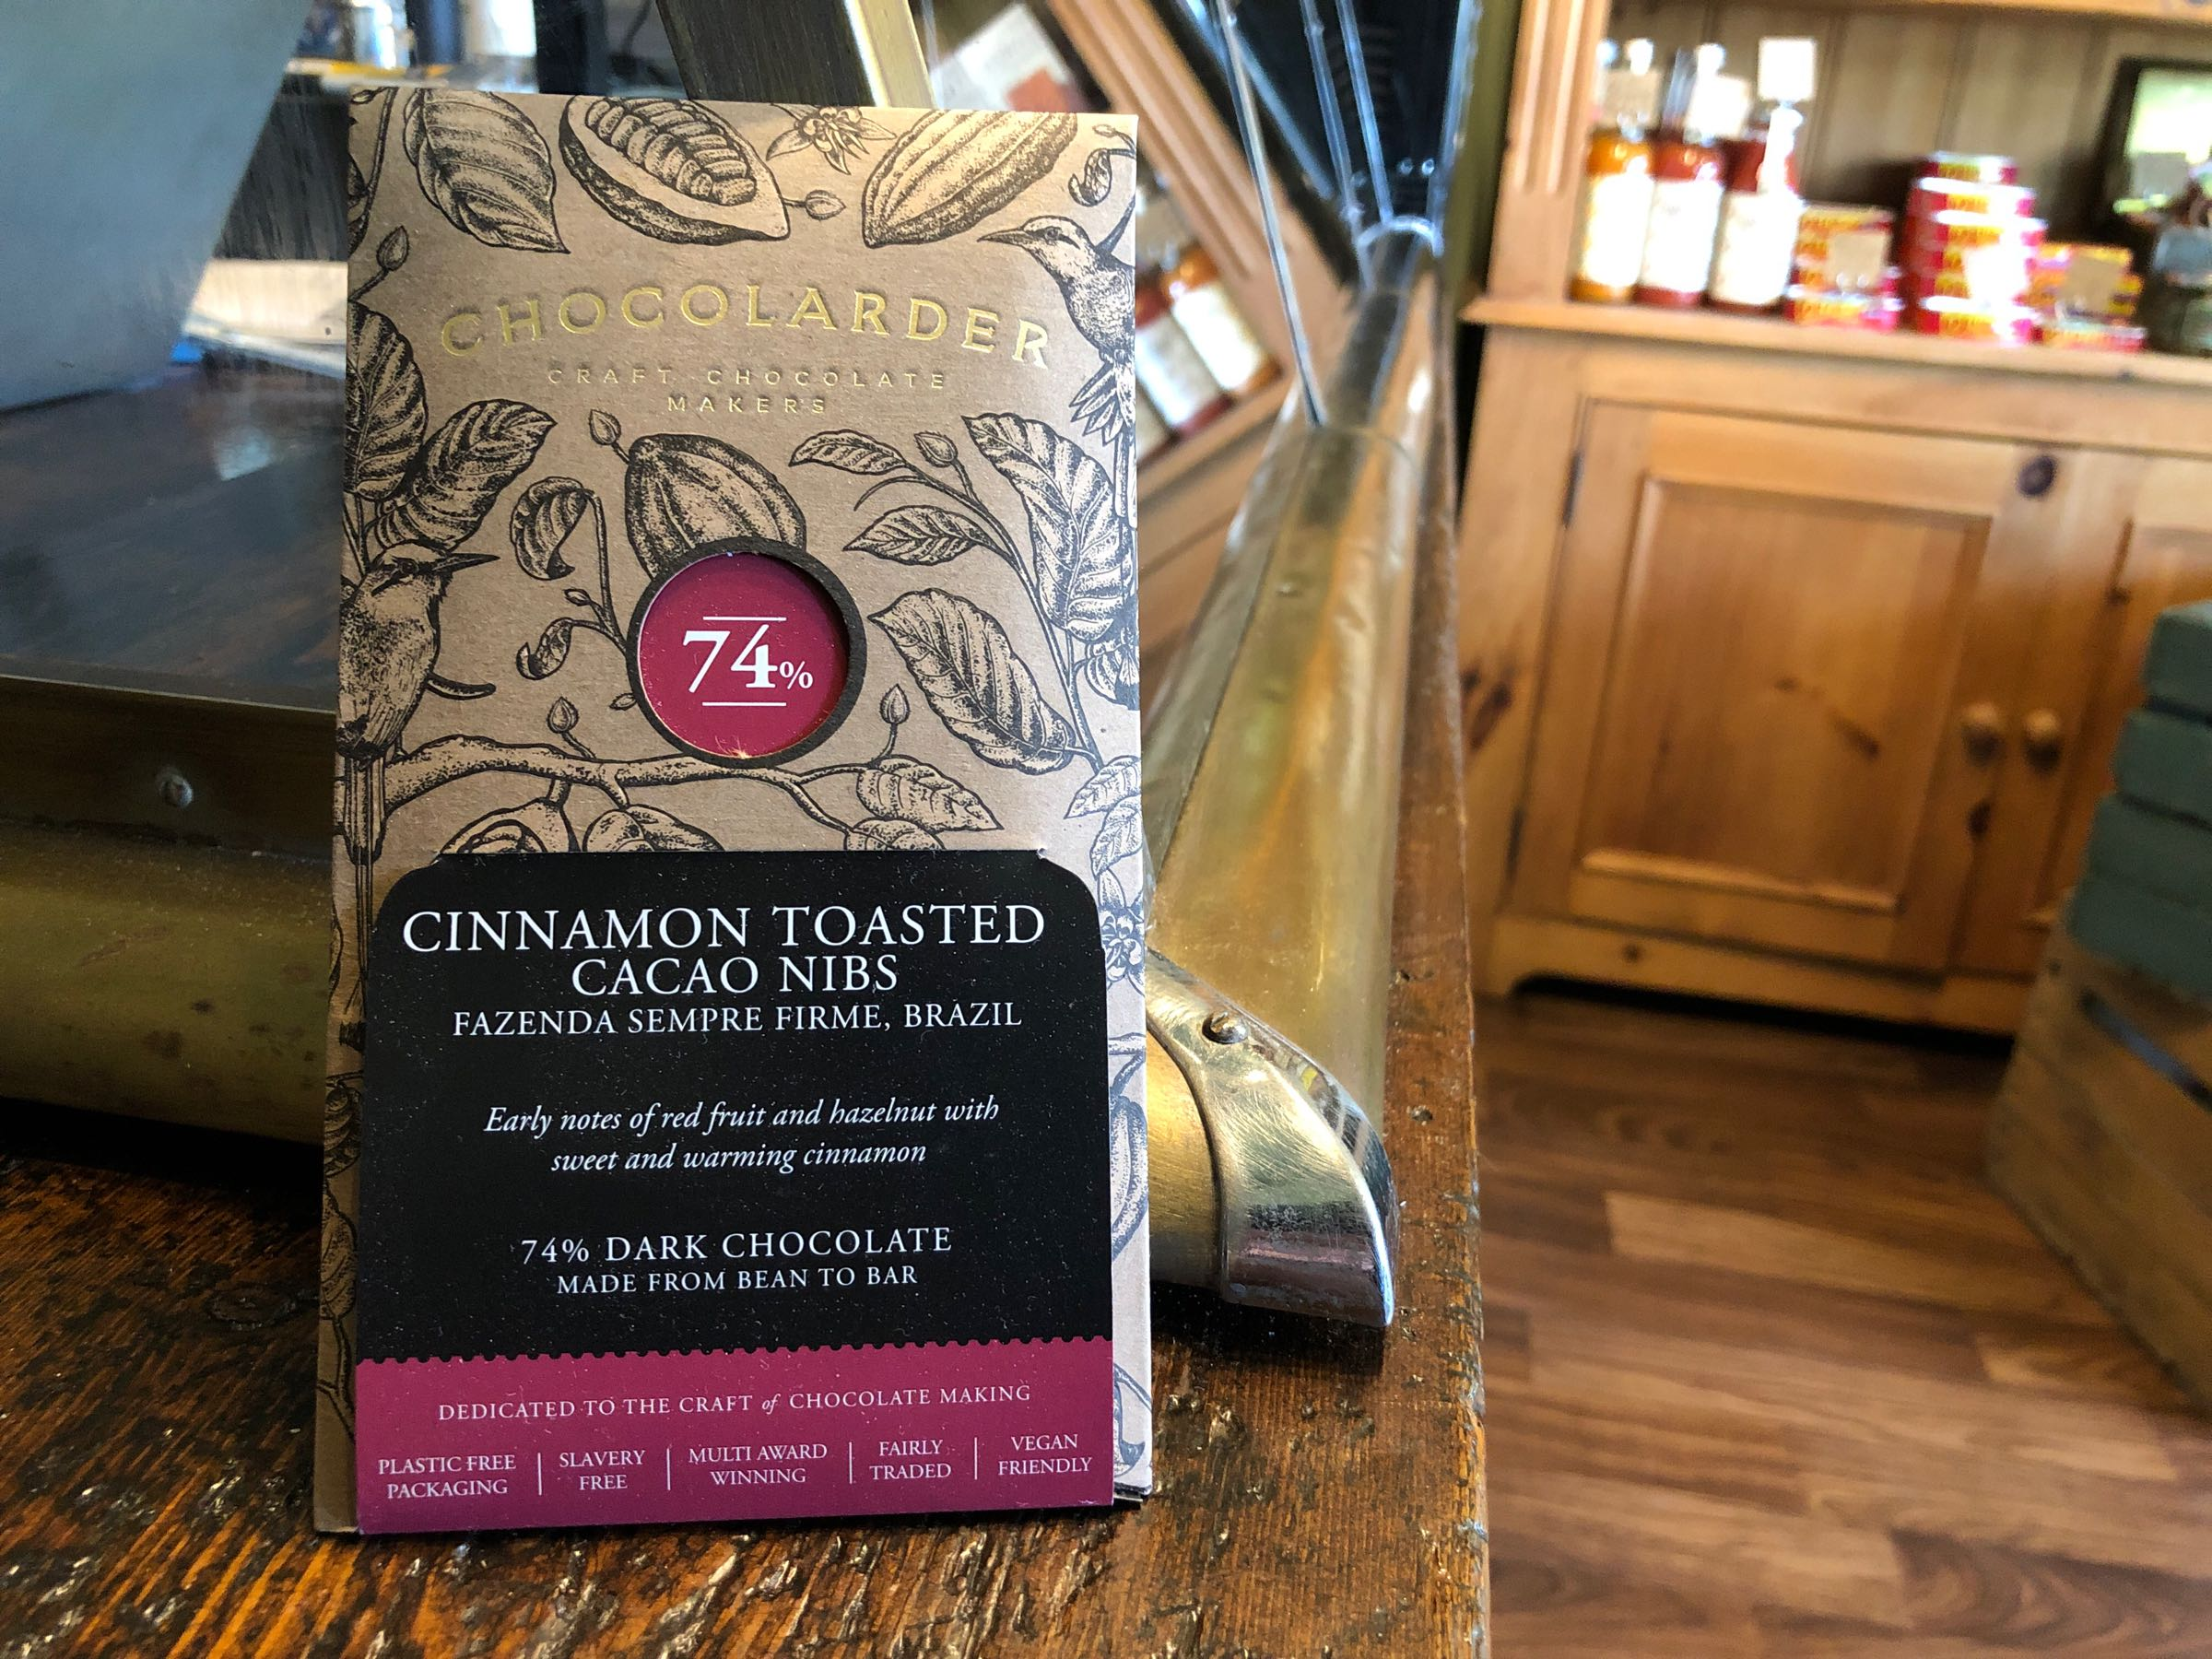 Chocolader Cinnamon Toasted Cacoa Nibs